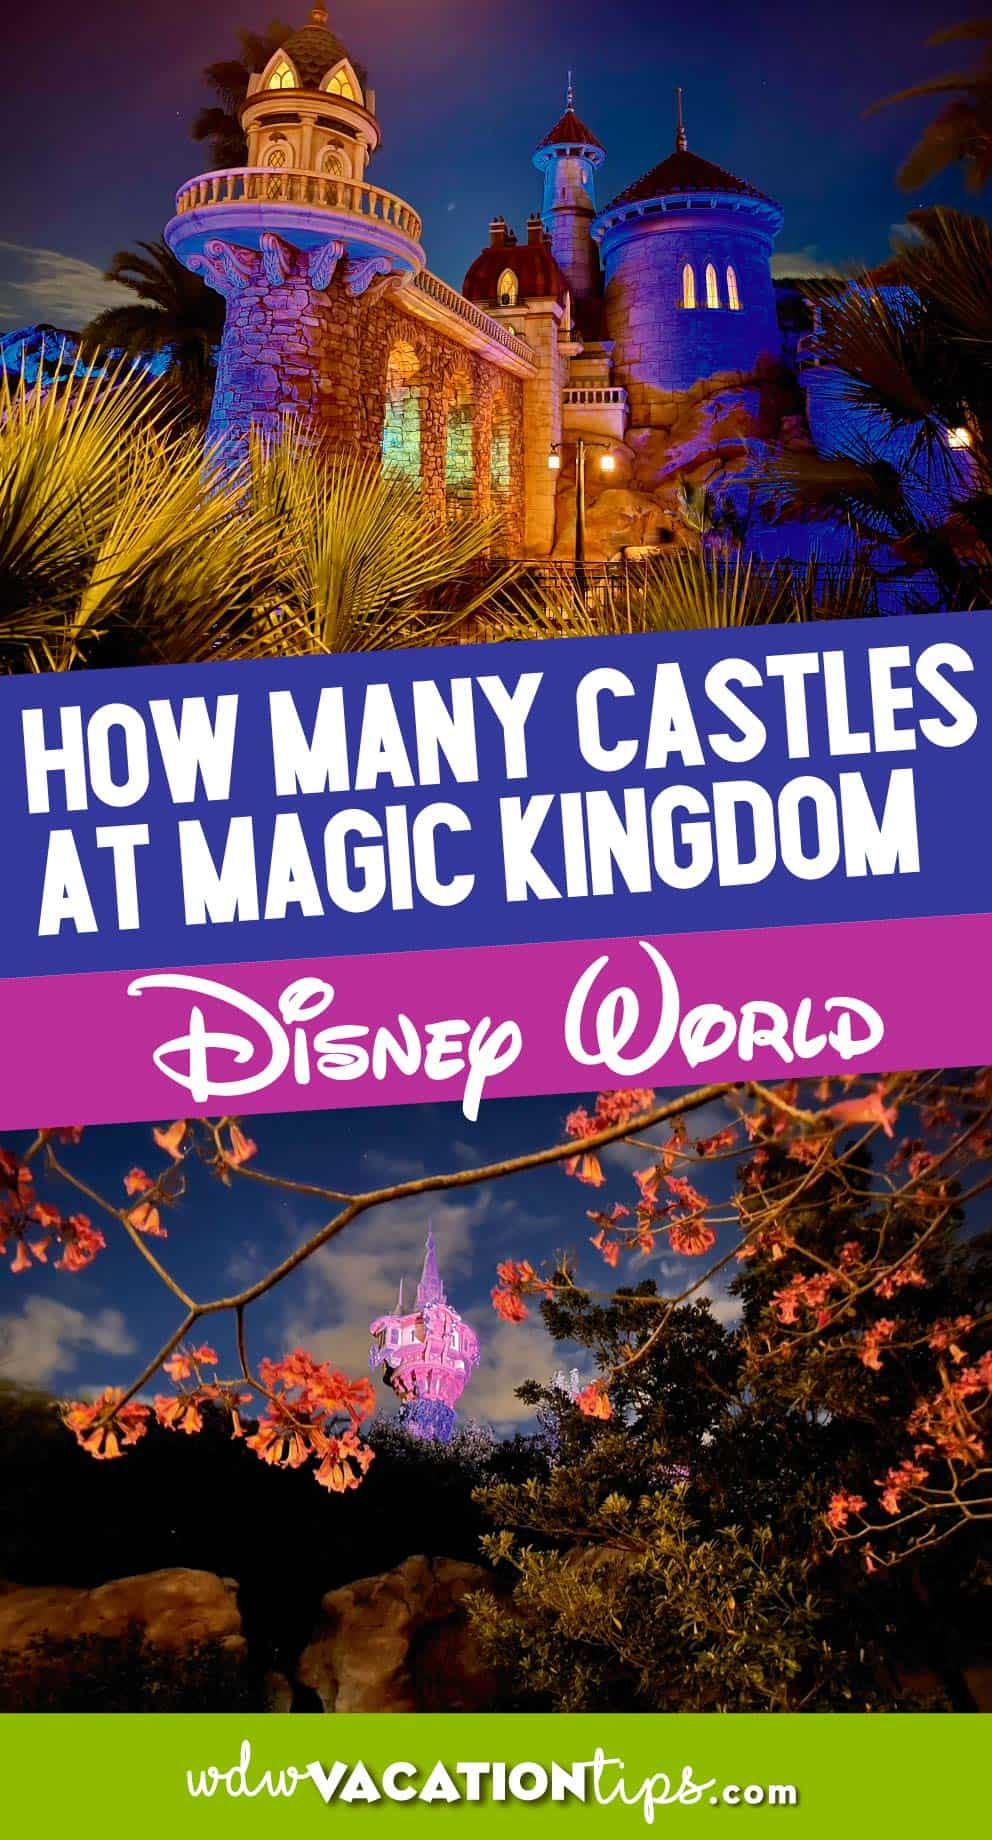 How many castles are at the magic kingdom